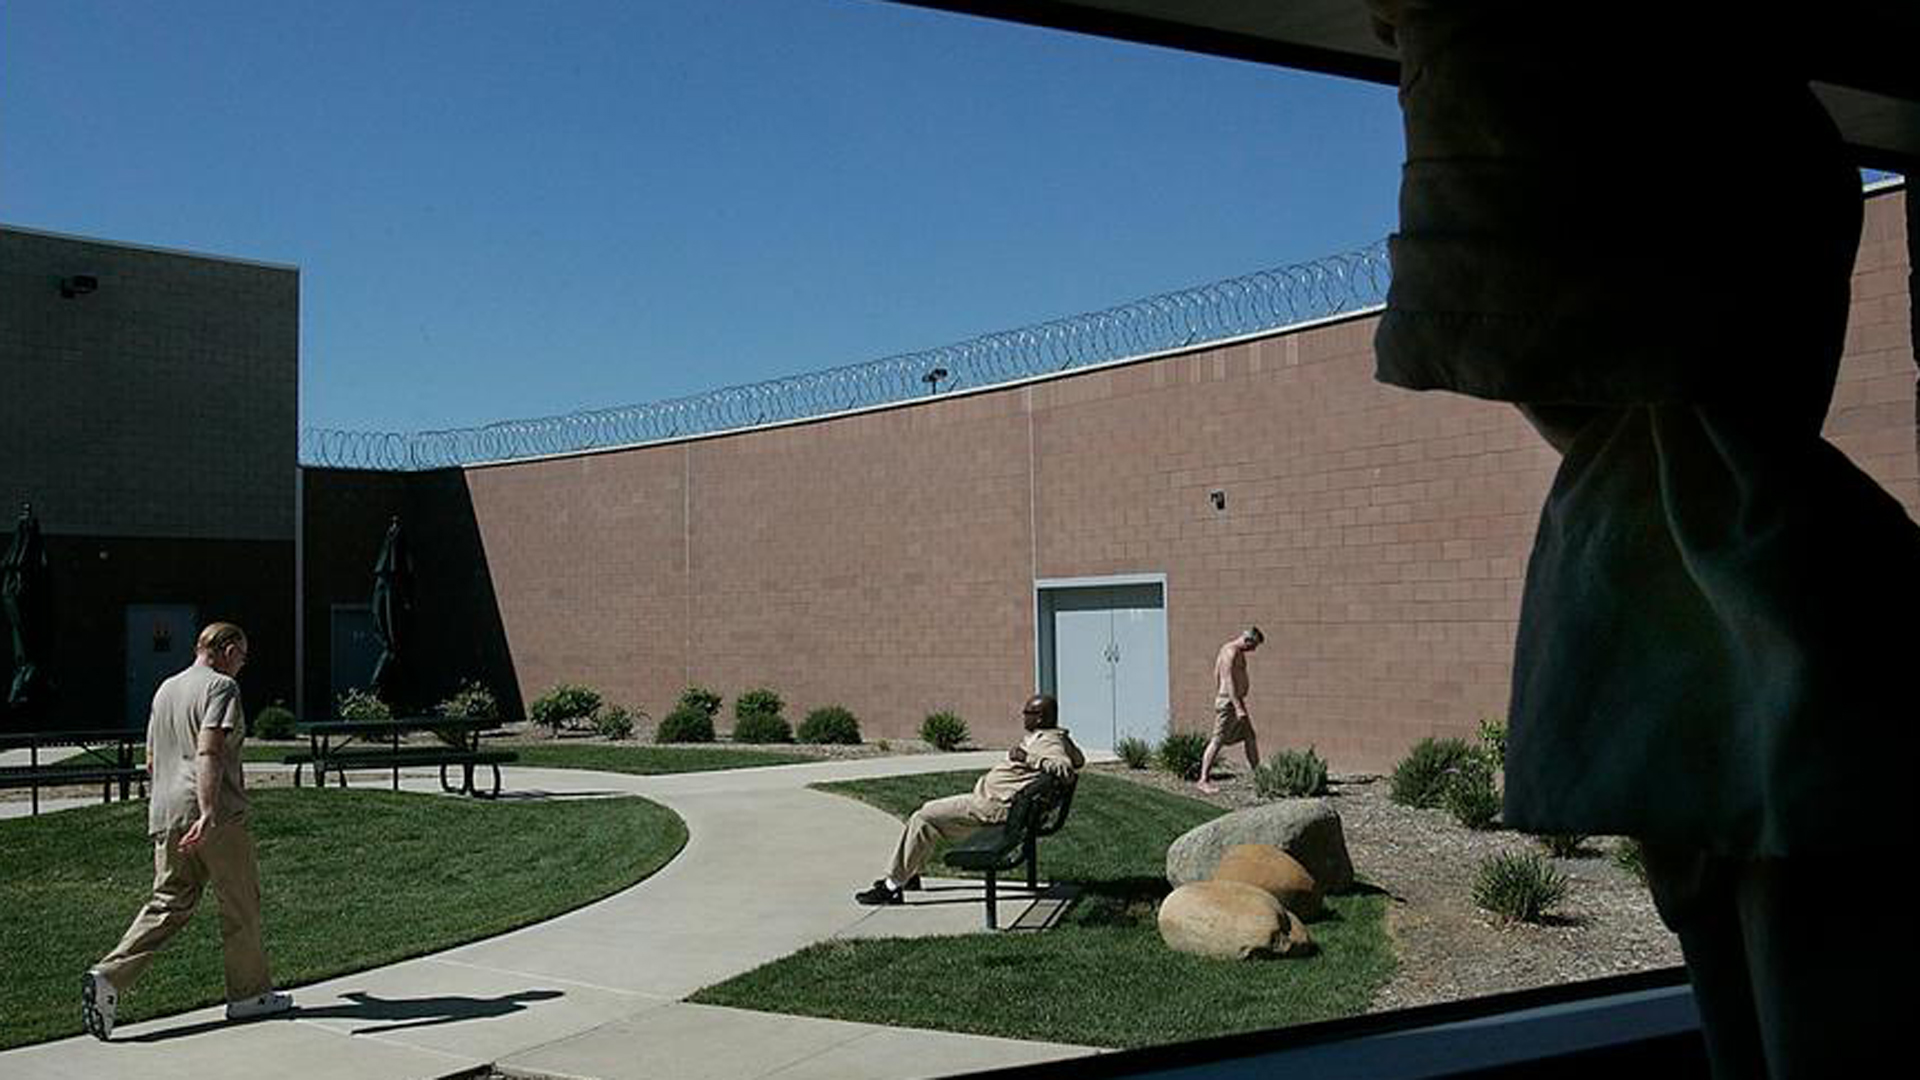 In this file photo, patients can be seen using one of the outdoor courtyards during a lunch break at Coalinga State Hospital. (Credit: Robert Gauthier / Los Angeles Times)